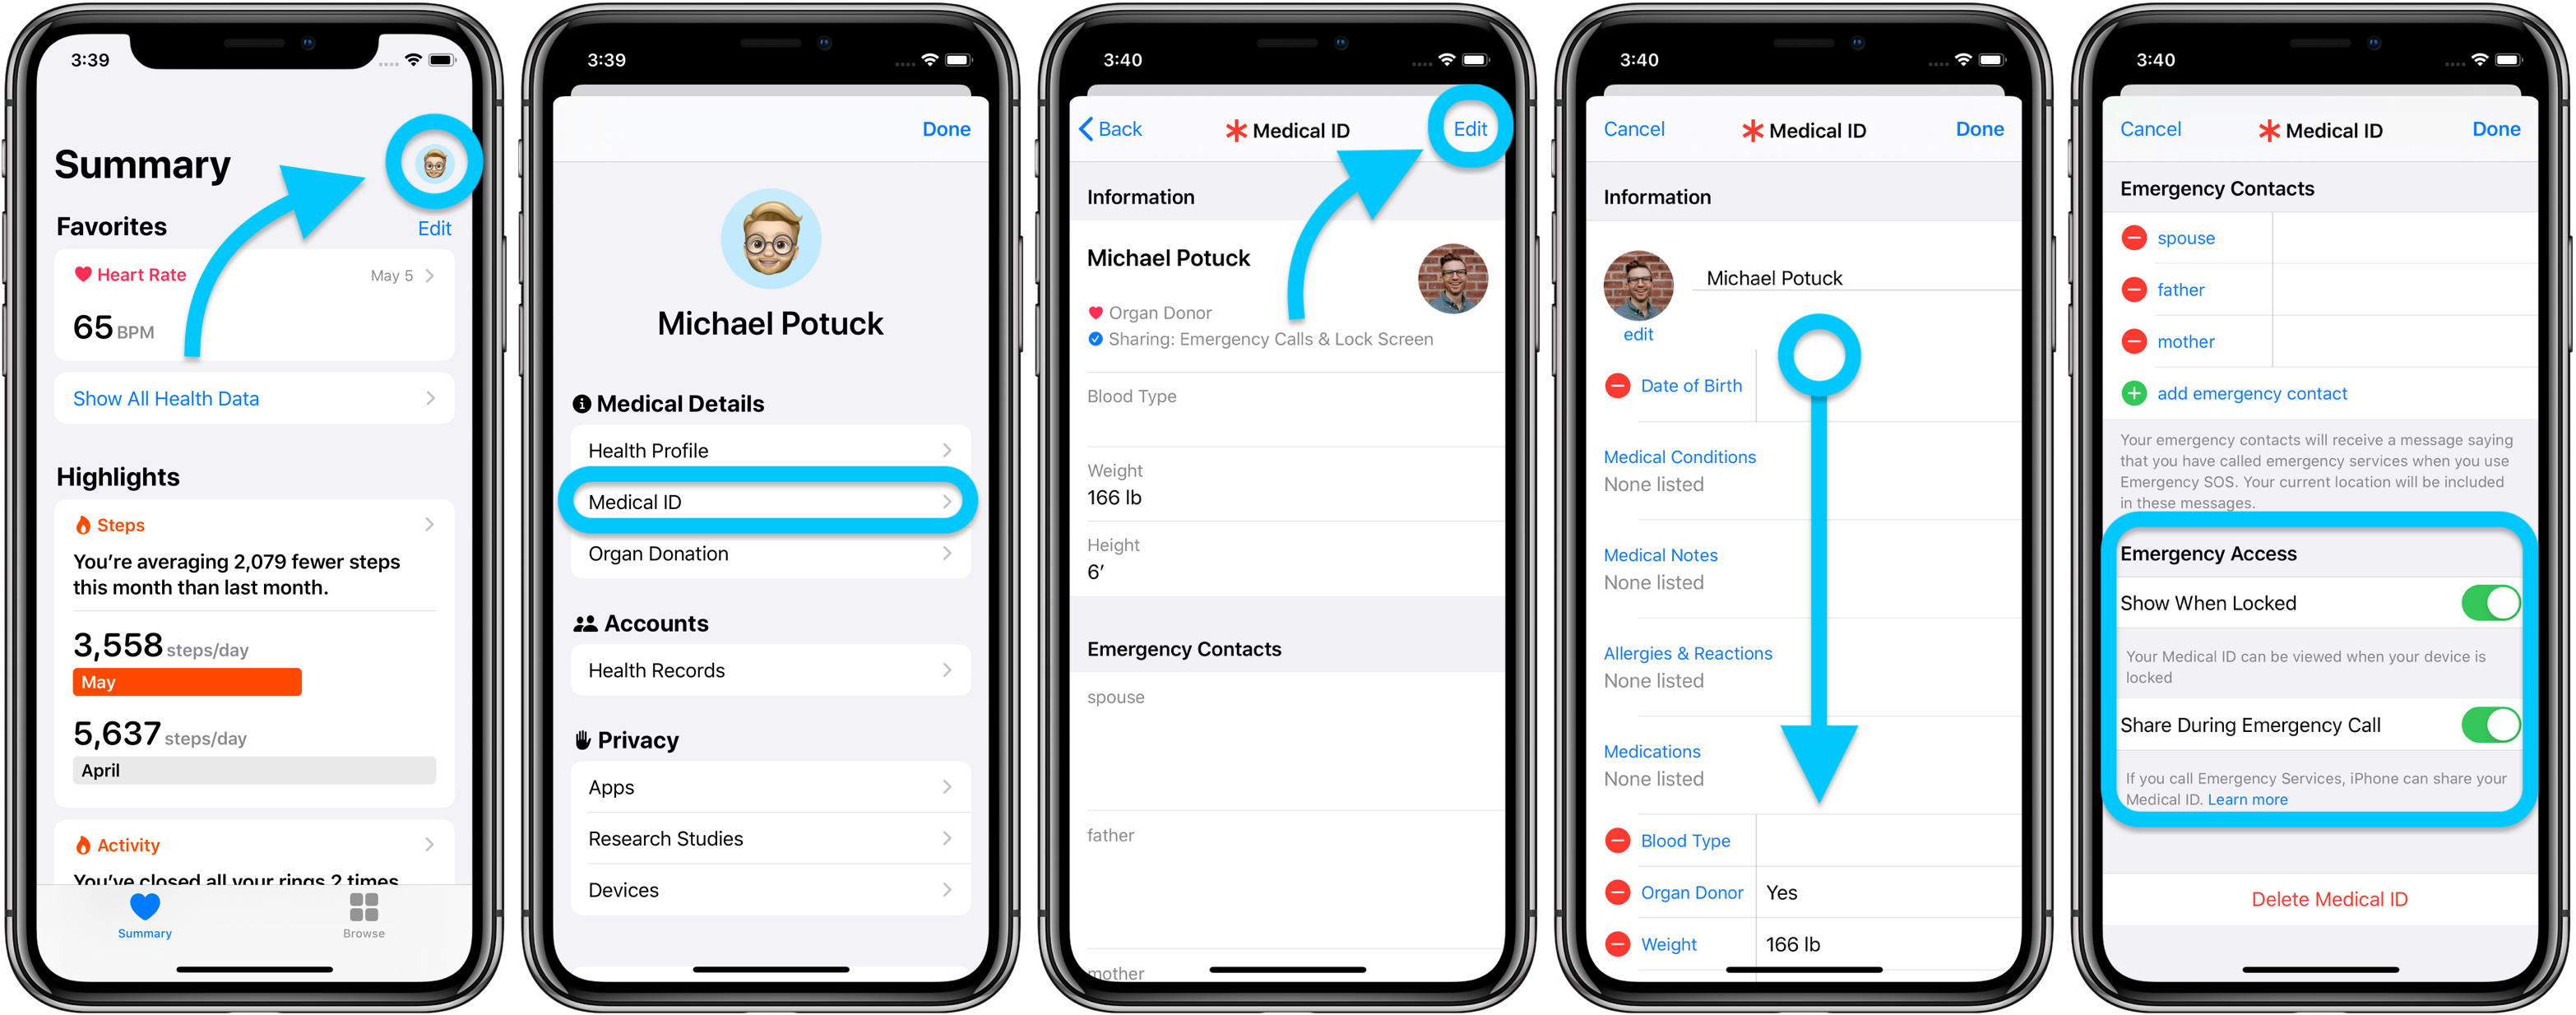 How to set up Medical ID iPhone Apple Watch walkthrough 2